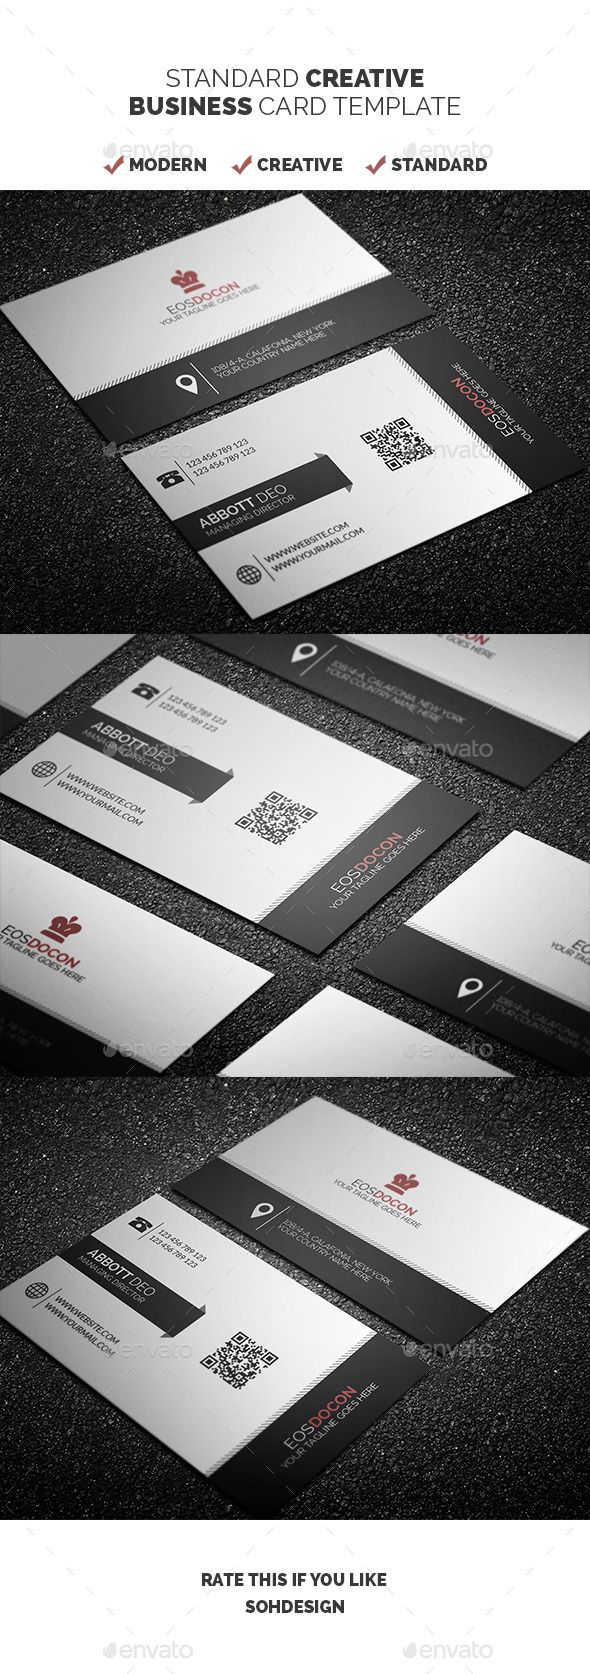 Standard creative business card template 3 fonts creative and standard creative business card template 3 reheart Choice Image